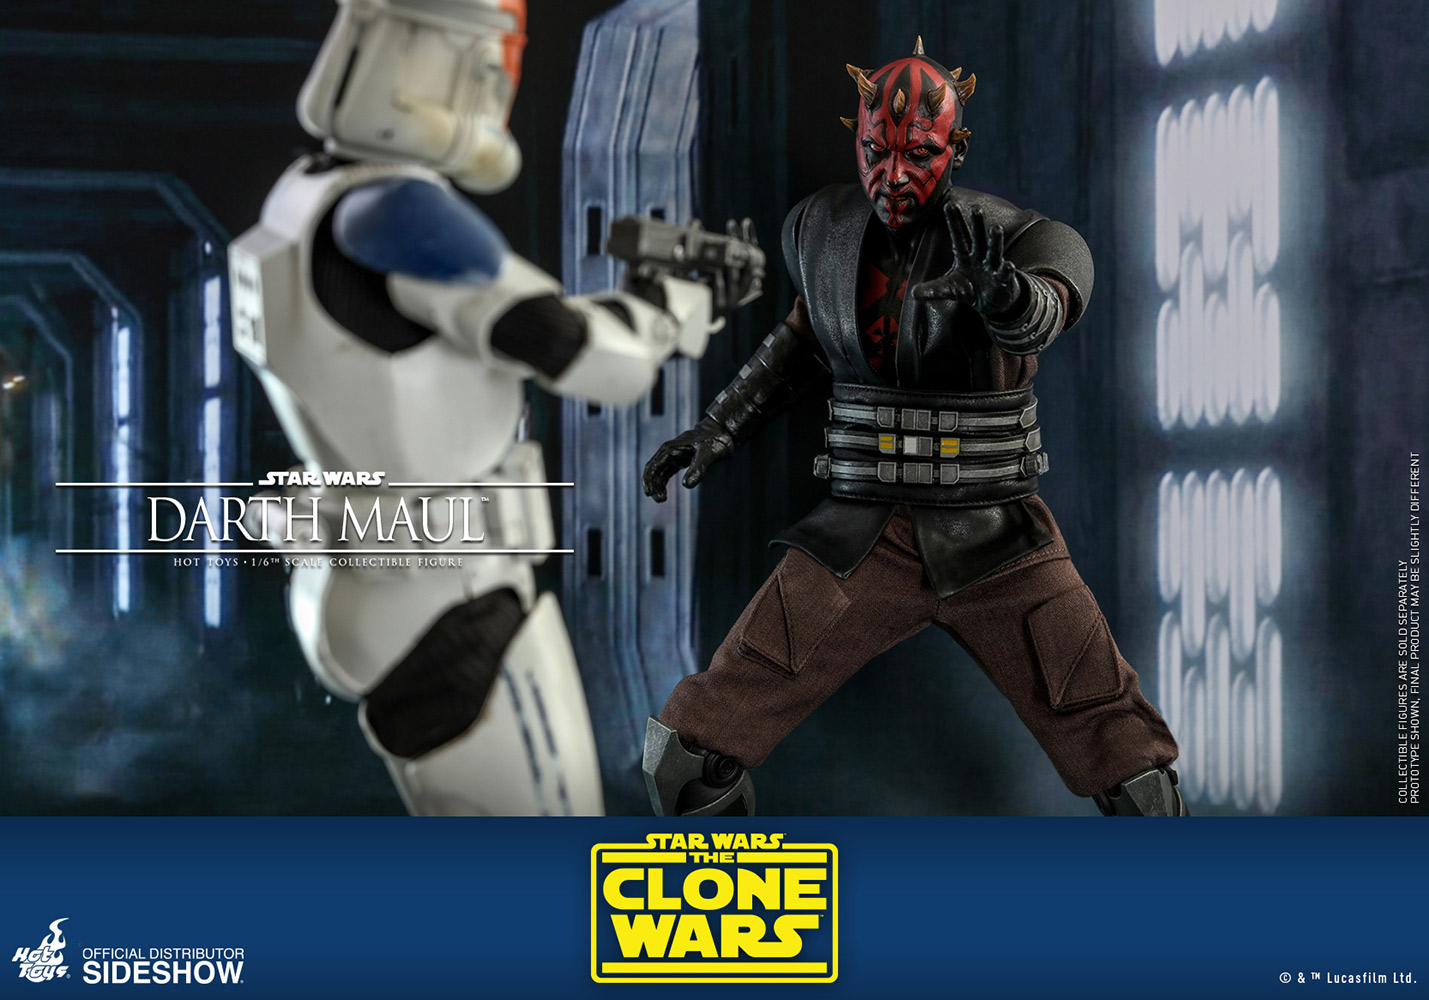 Star Wars: The Clone Wars - Darth Maul 1:6 Scale Figure